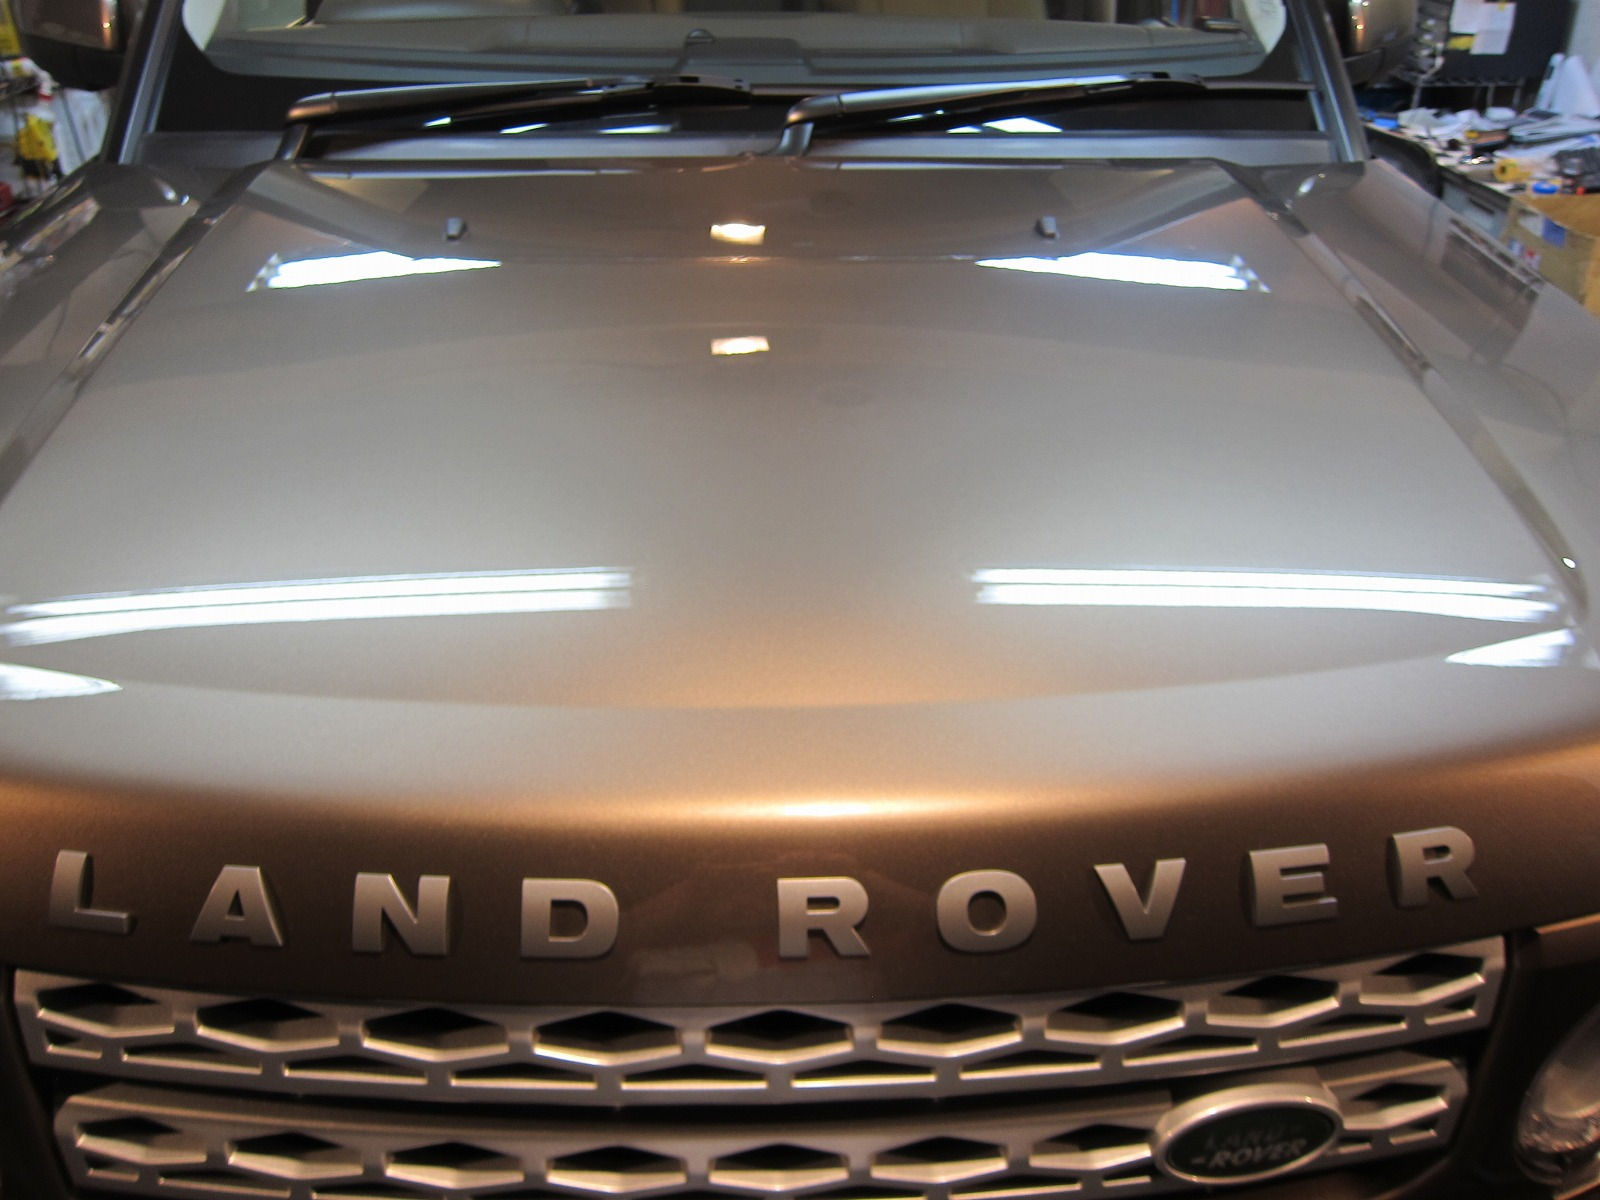 20160629-landrover-discovery4-14